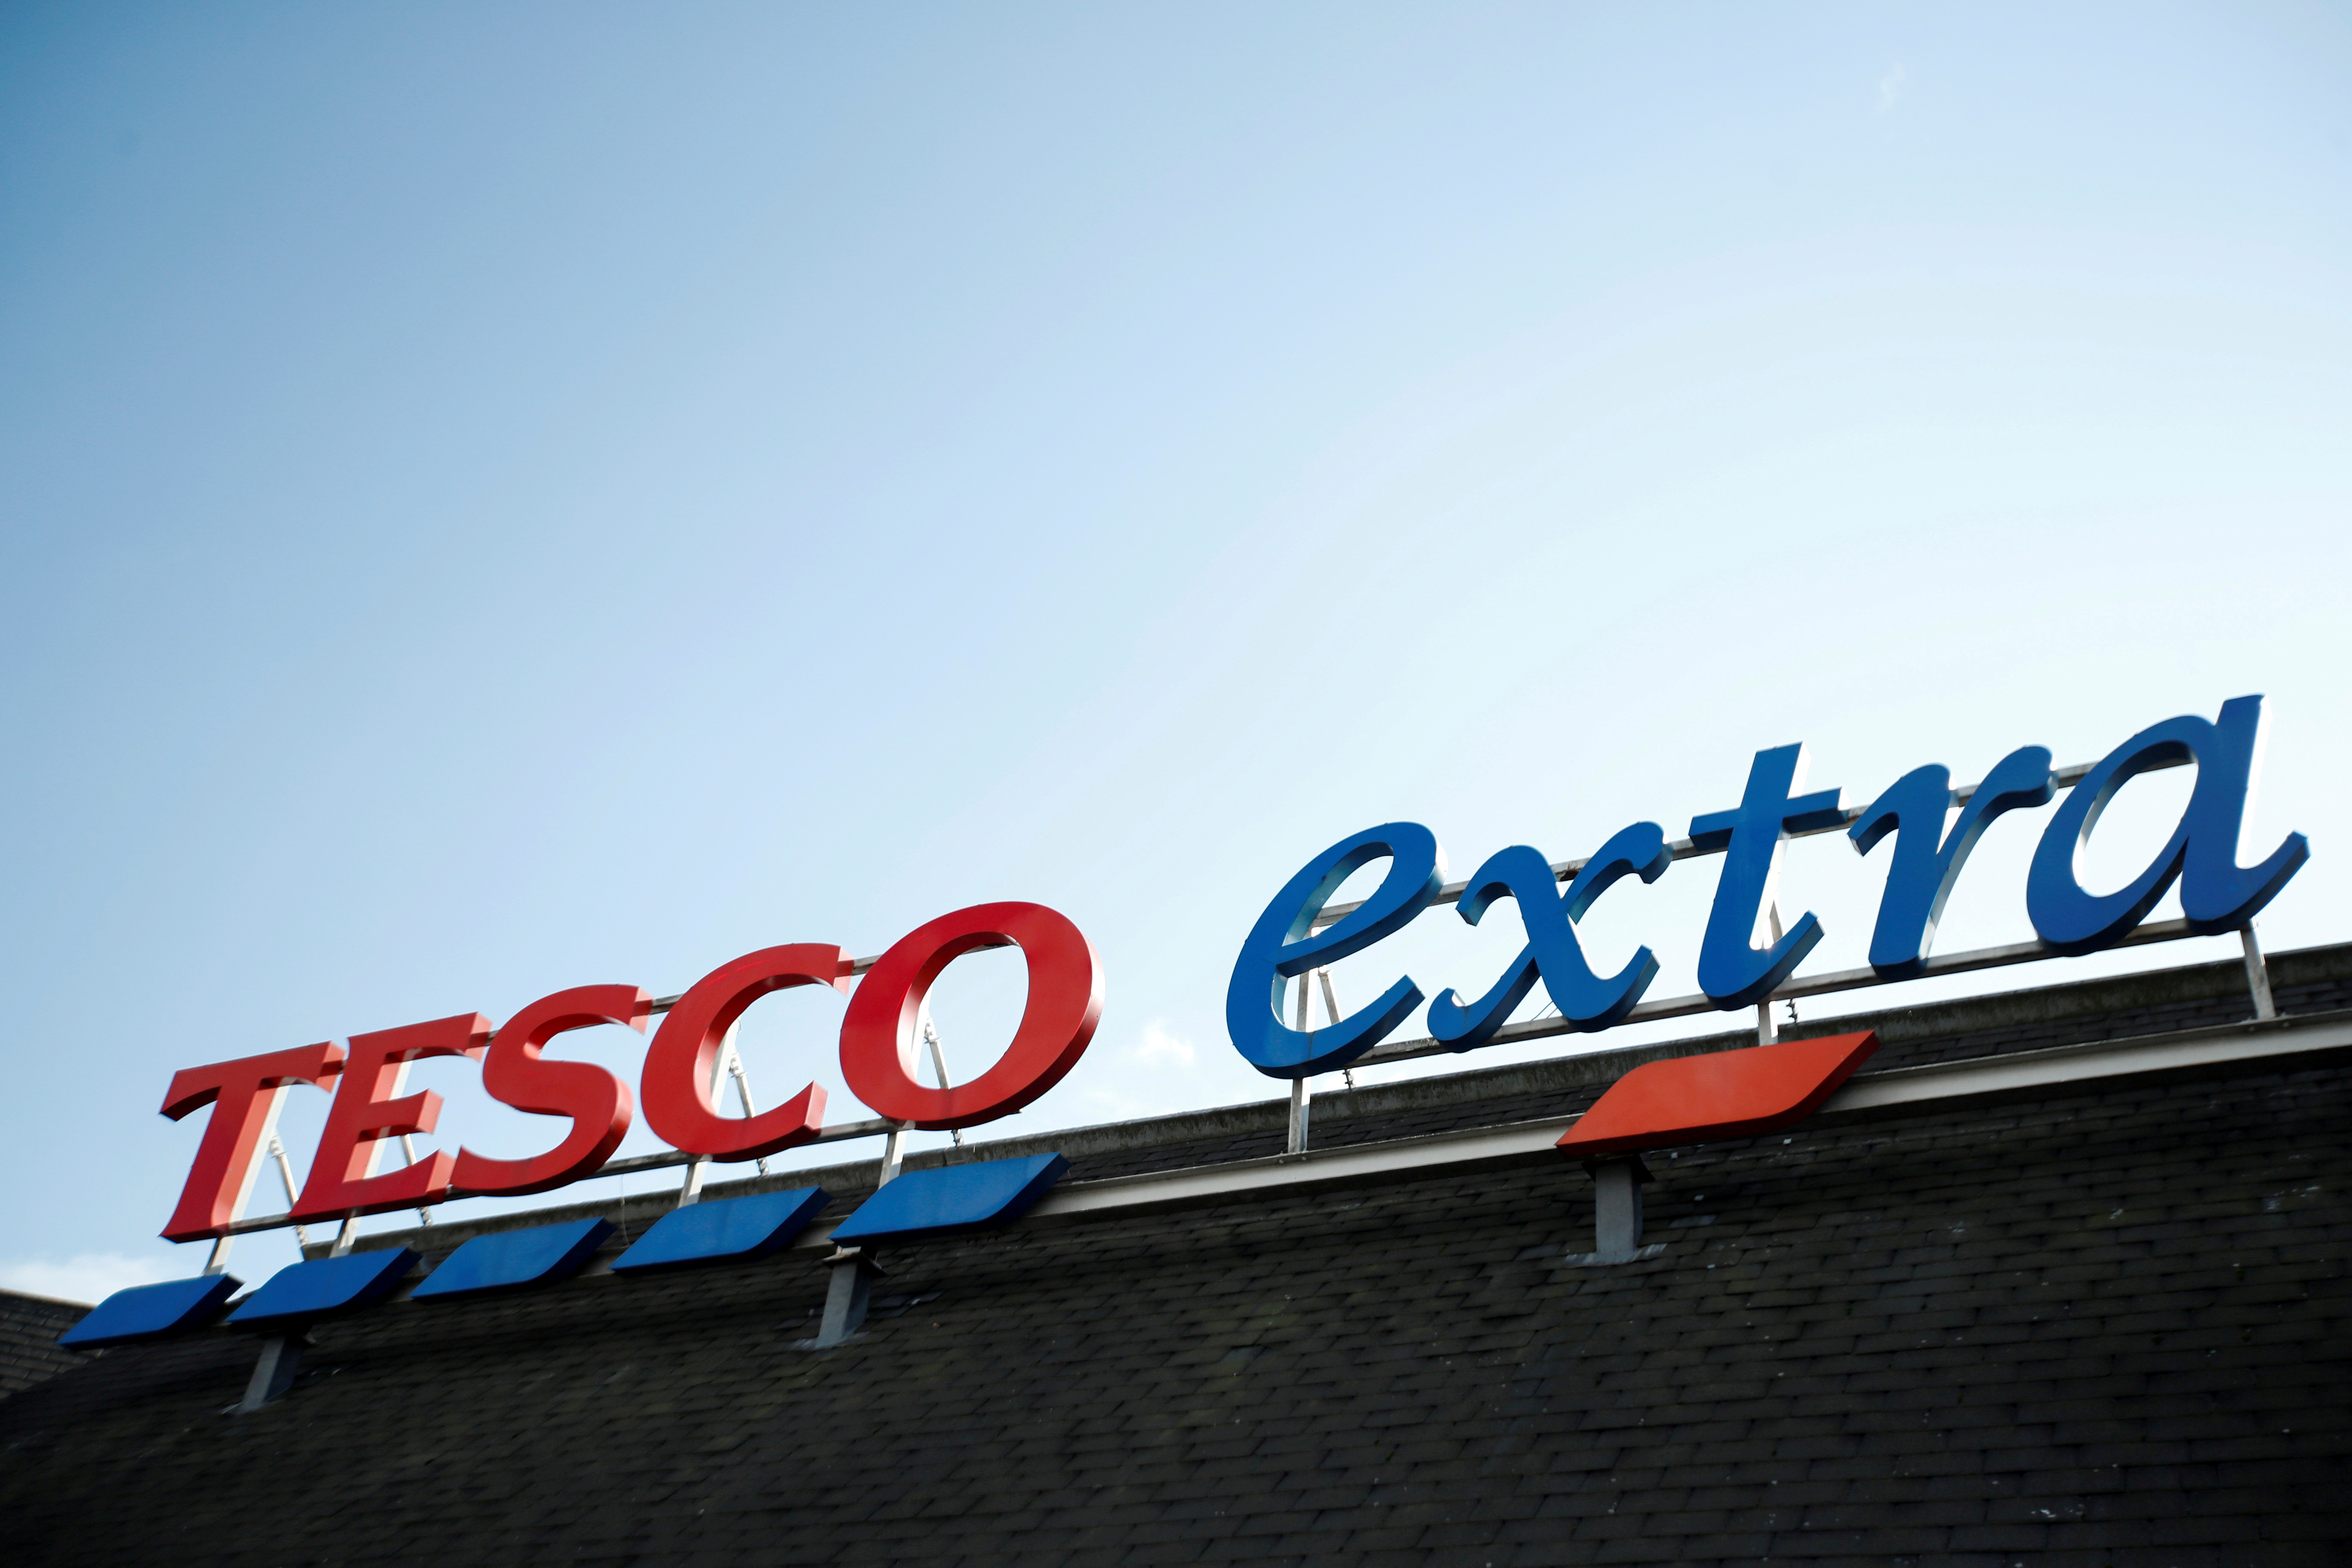 A logo of Tesco is pictured outside a Tesco supermarket in Hatfield, Britain October 6, 2020. REUTERS/Peter Cziborra